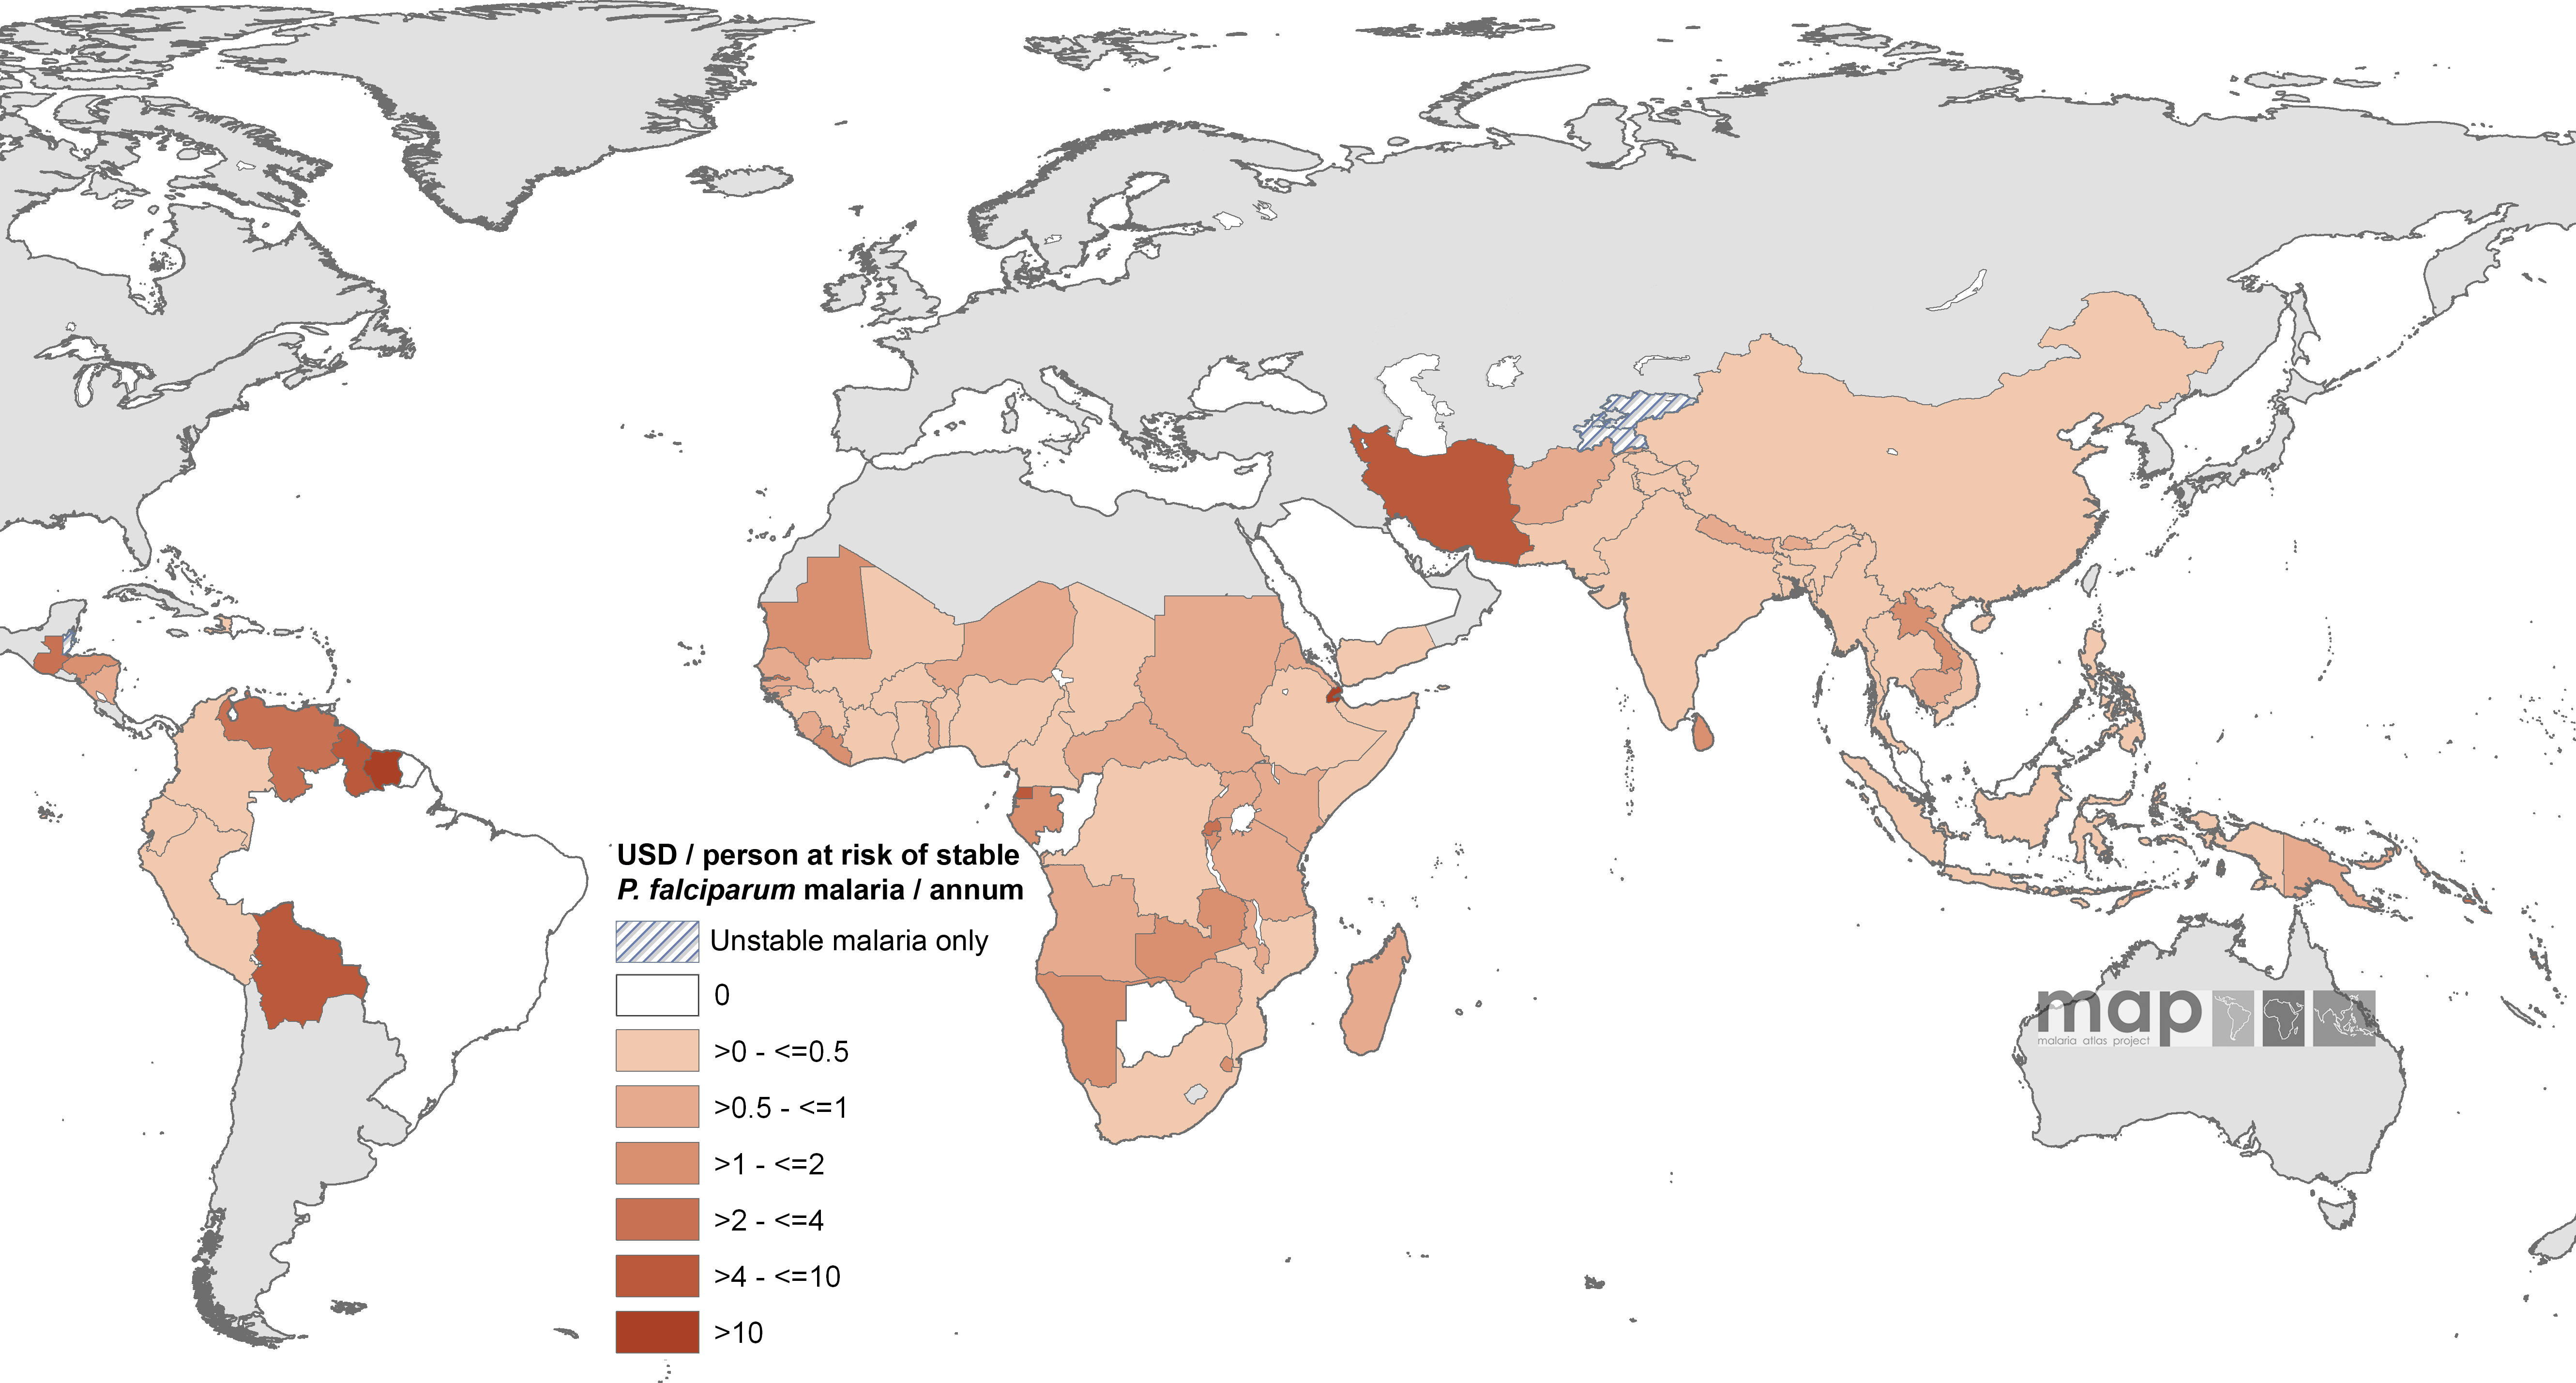 Mean Approved GFATM Funding for 87 <i>Pf</i>MECs Expressed as US Dollars (USD) Per Capita at Stable P. falciparum Risk Per Annum